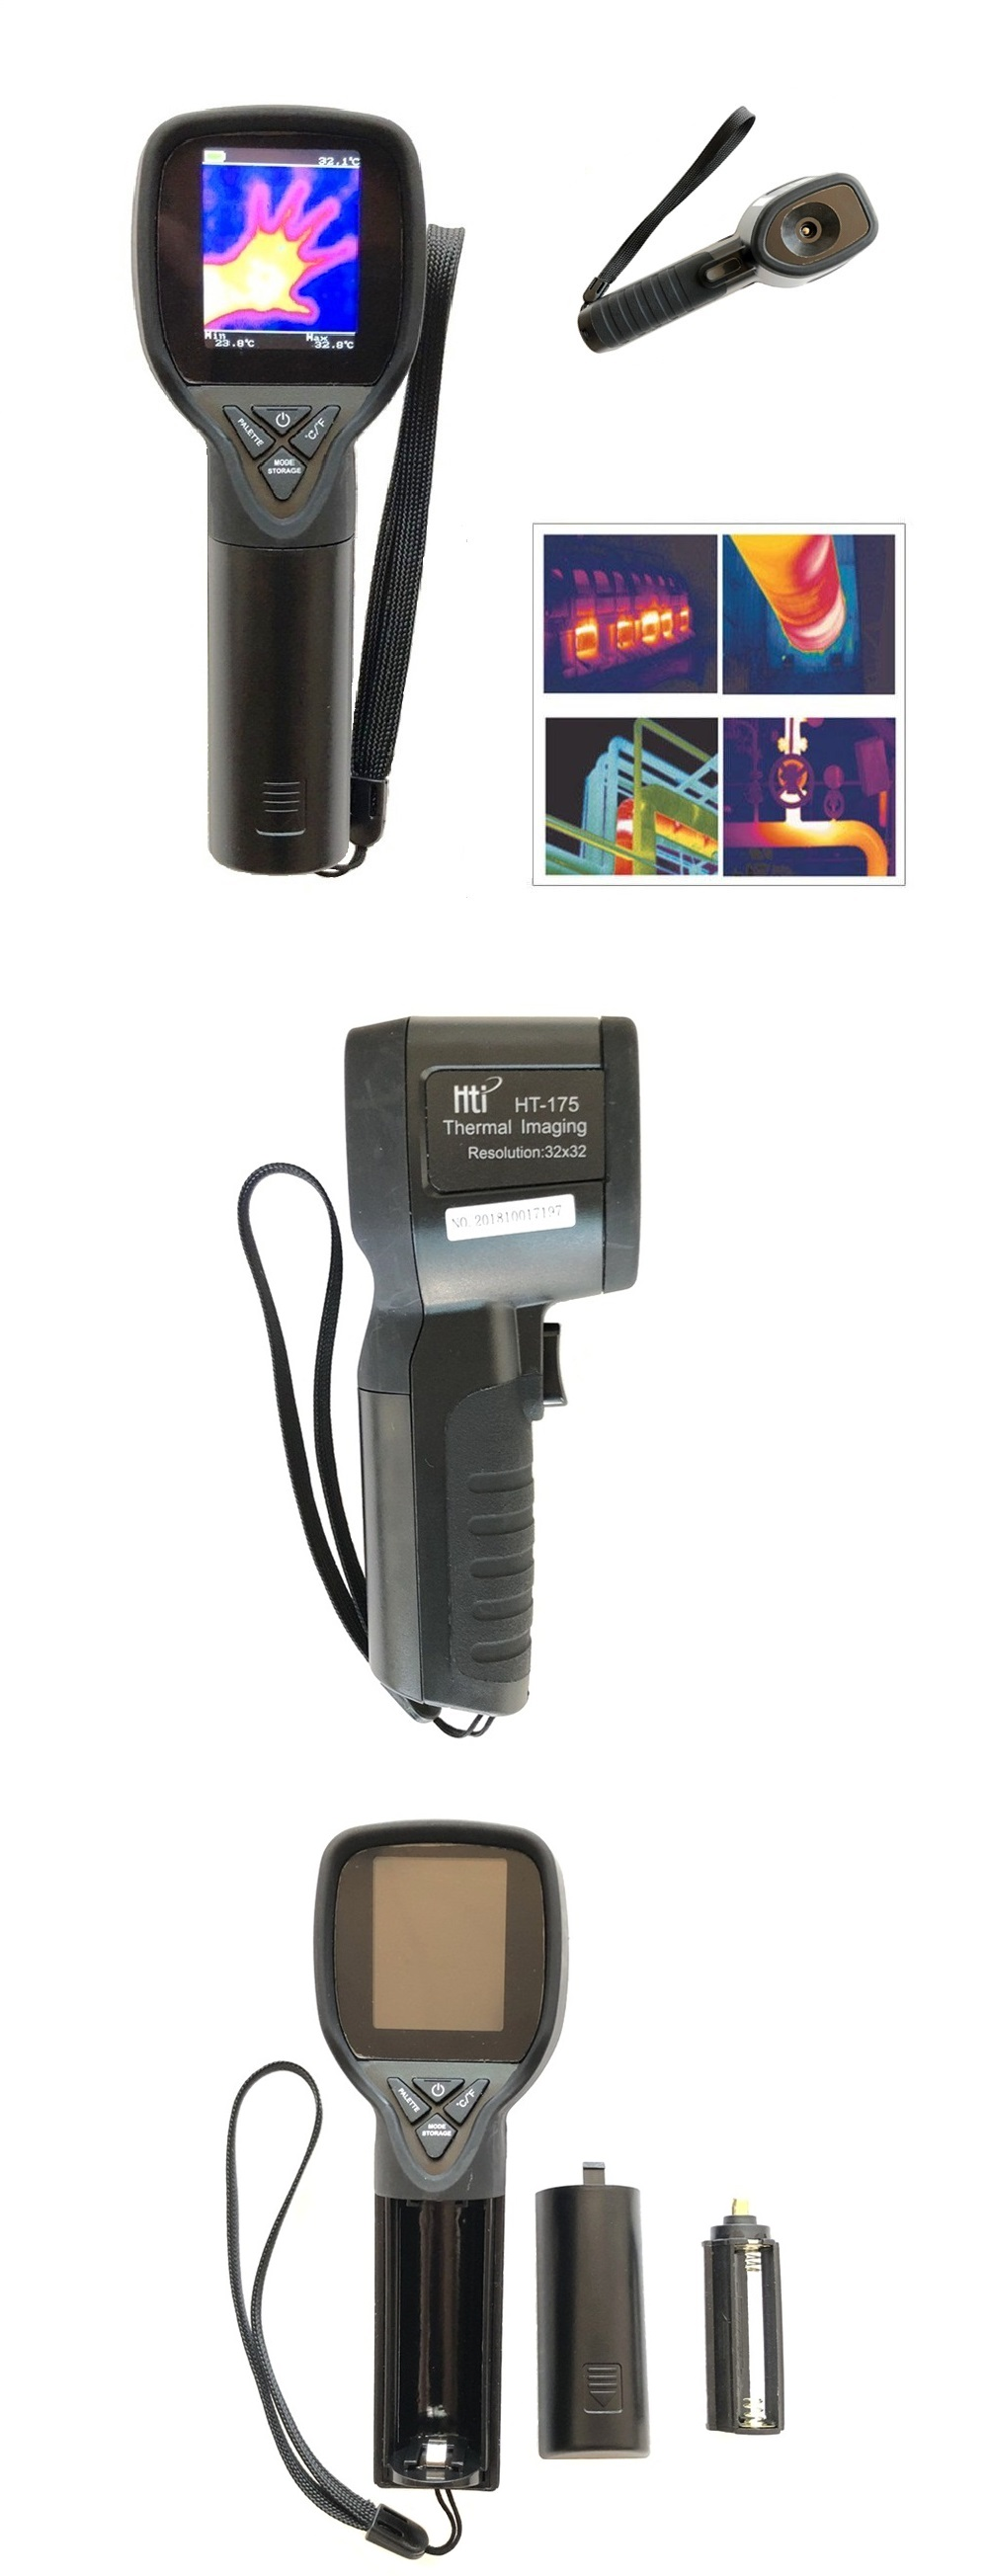 New Ht-175 Imager Camera Digital Thermal Imaging Camera Ir Infrared Thermometwr Spare No Cost At Any Cost Altro Apparecchiatura Pro Apparecchiature Professionali